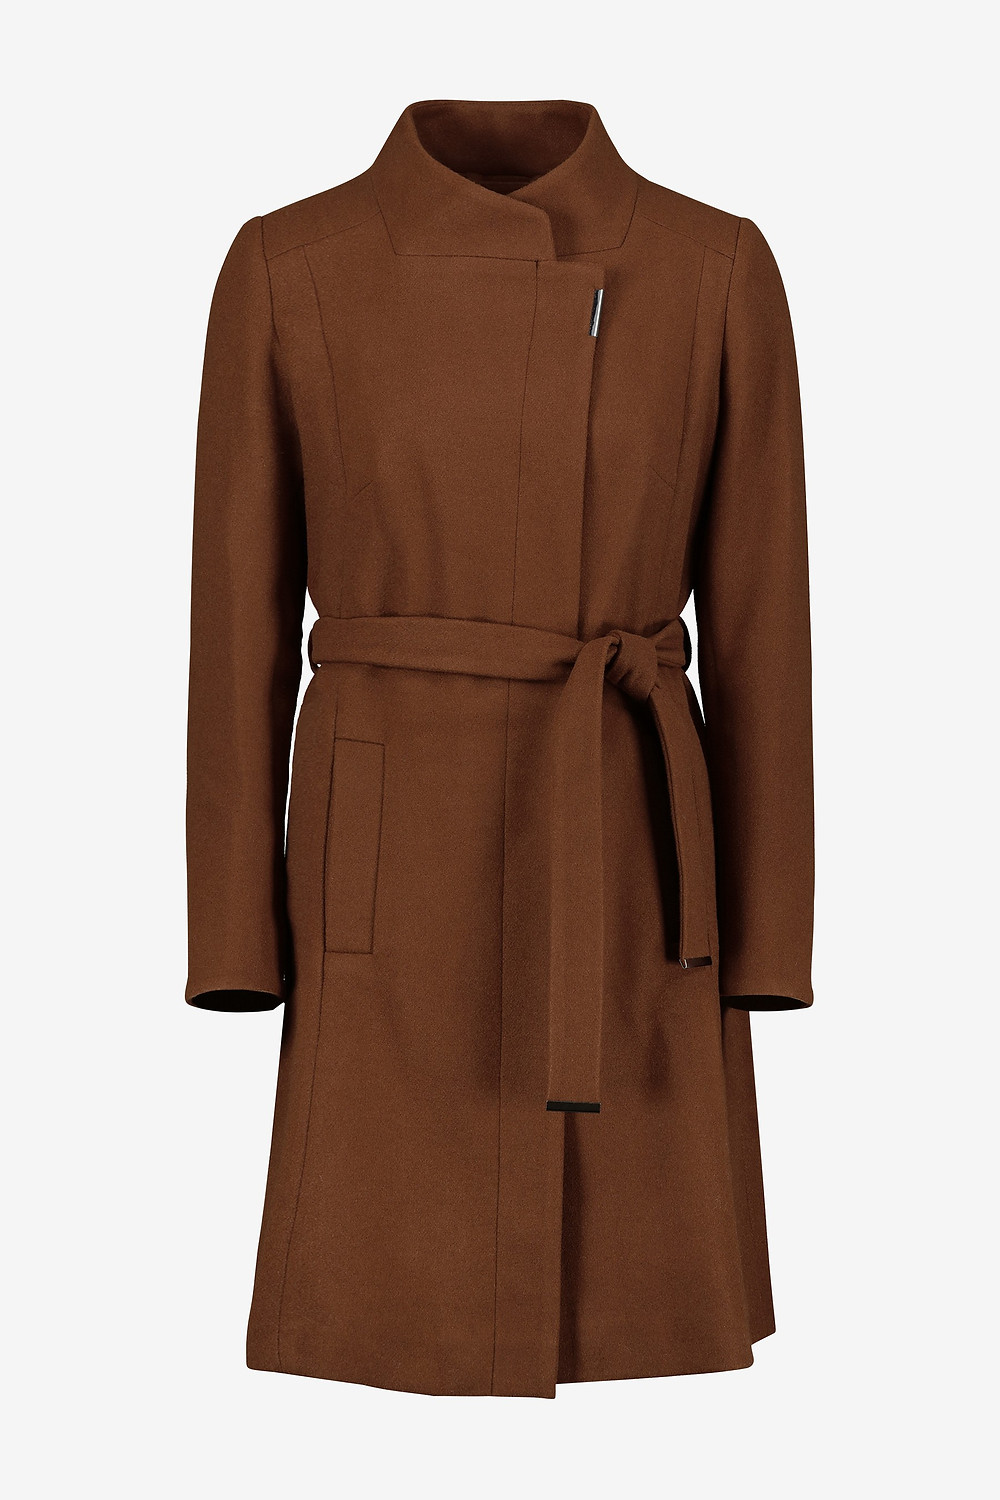 Next Tobacco Belted Wrap Coat The Winter Coat, A practical buying guide, The Image Tree blog